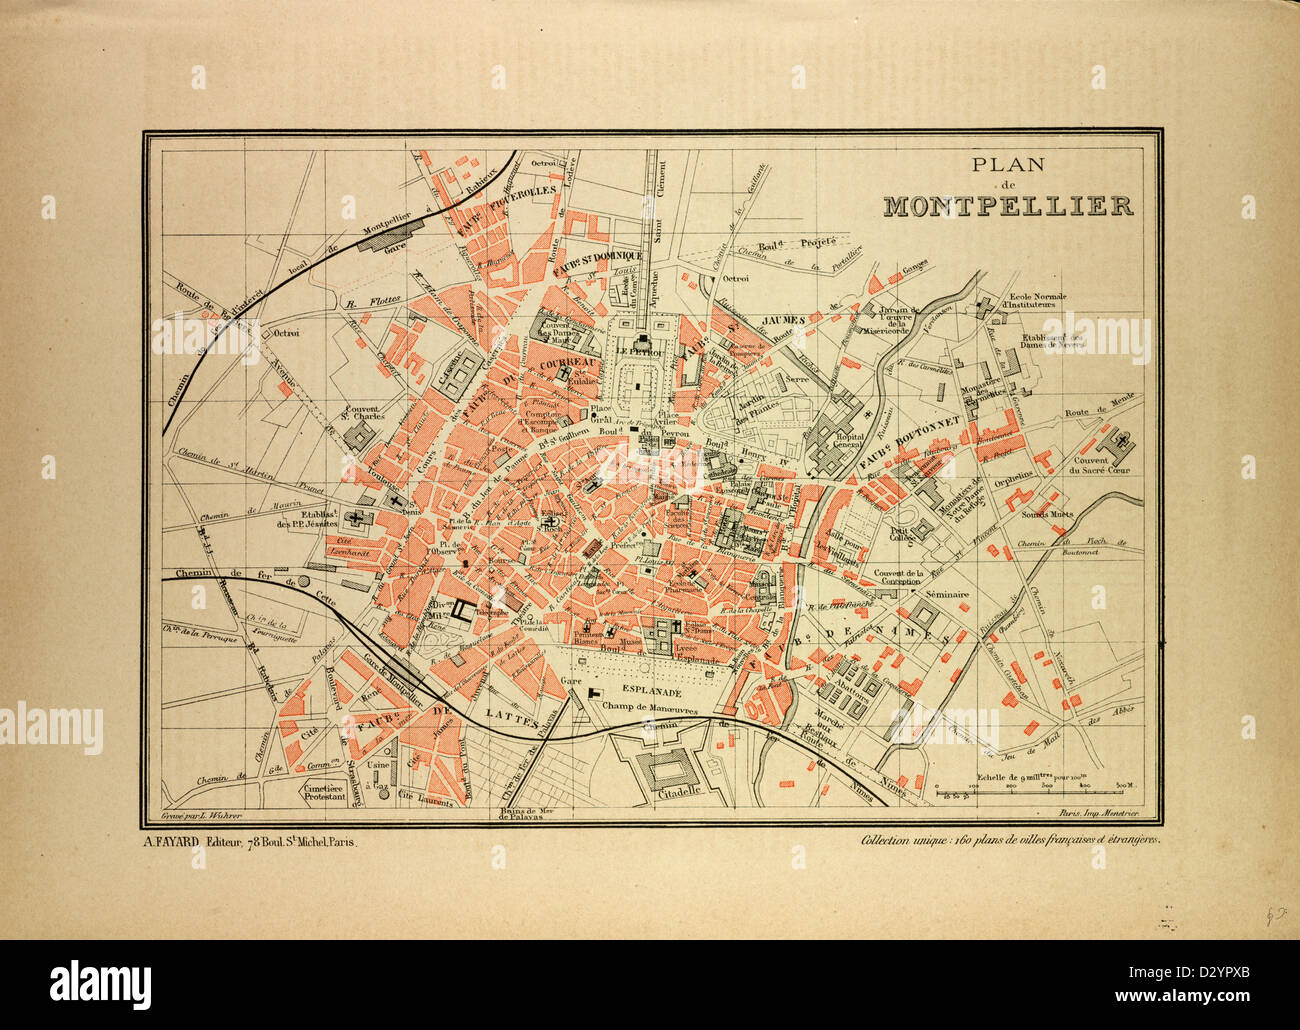 Montpellier On Map Of France.Map Of Montpellier France Stock Photo 53471107 Alamy